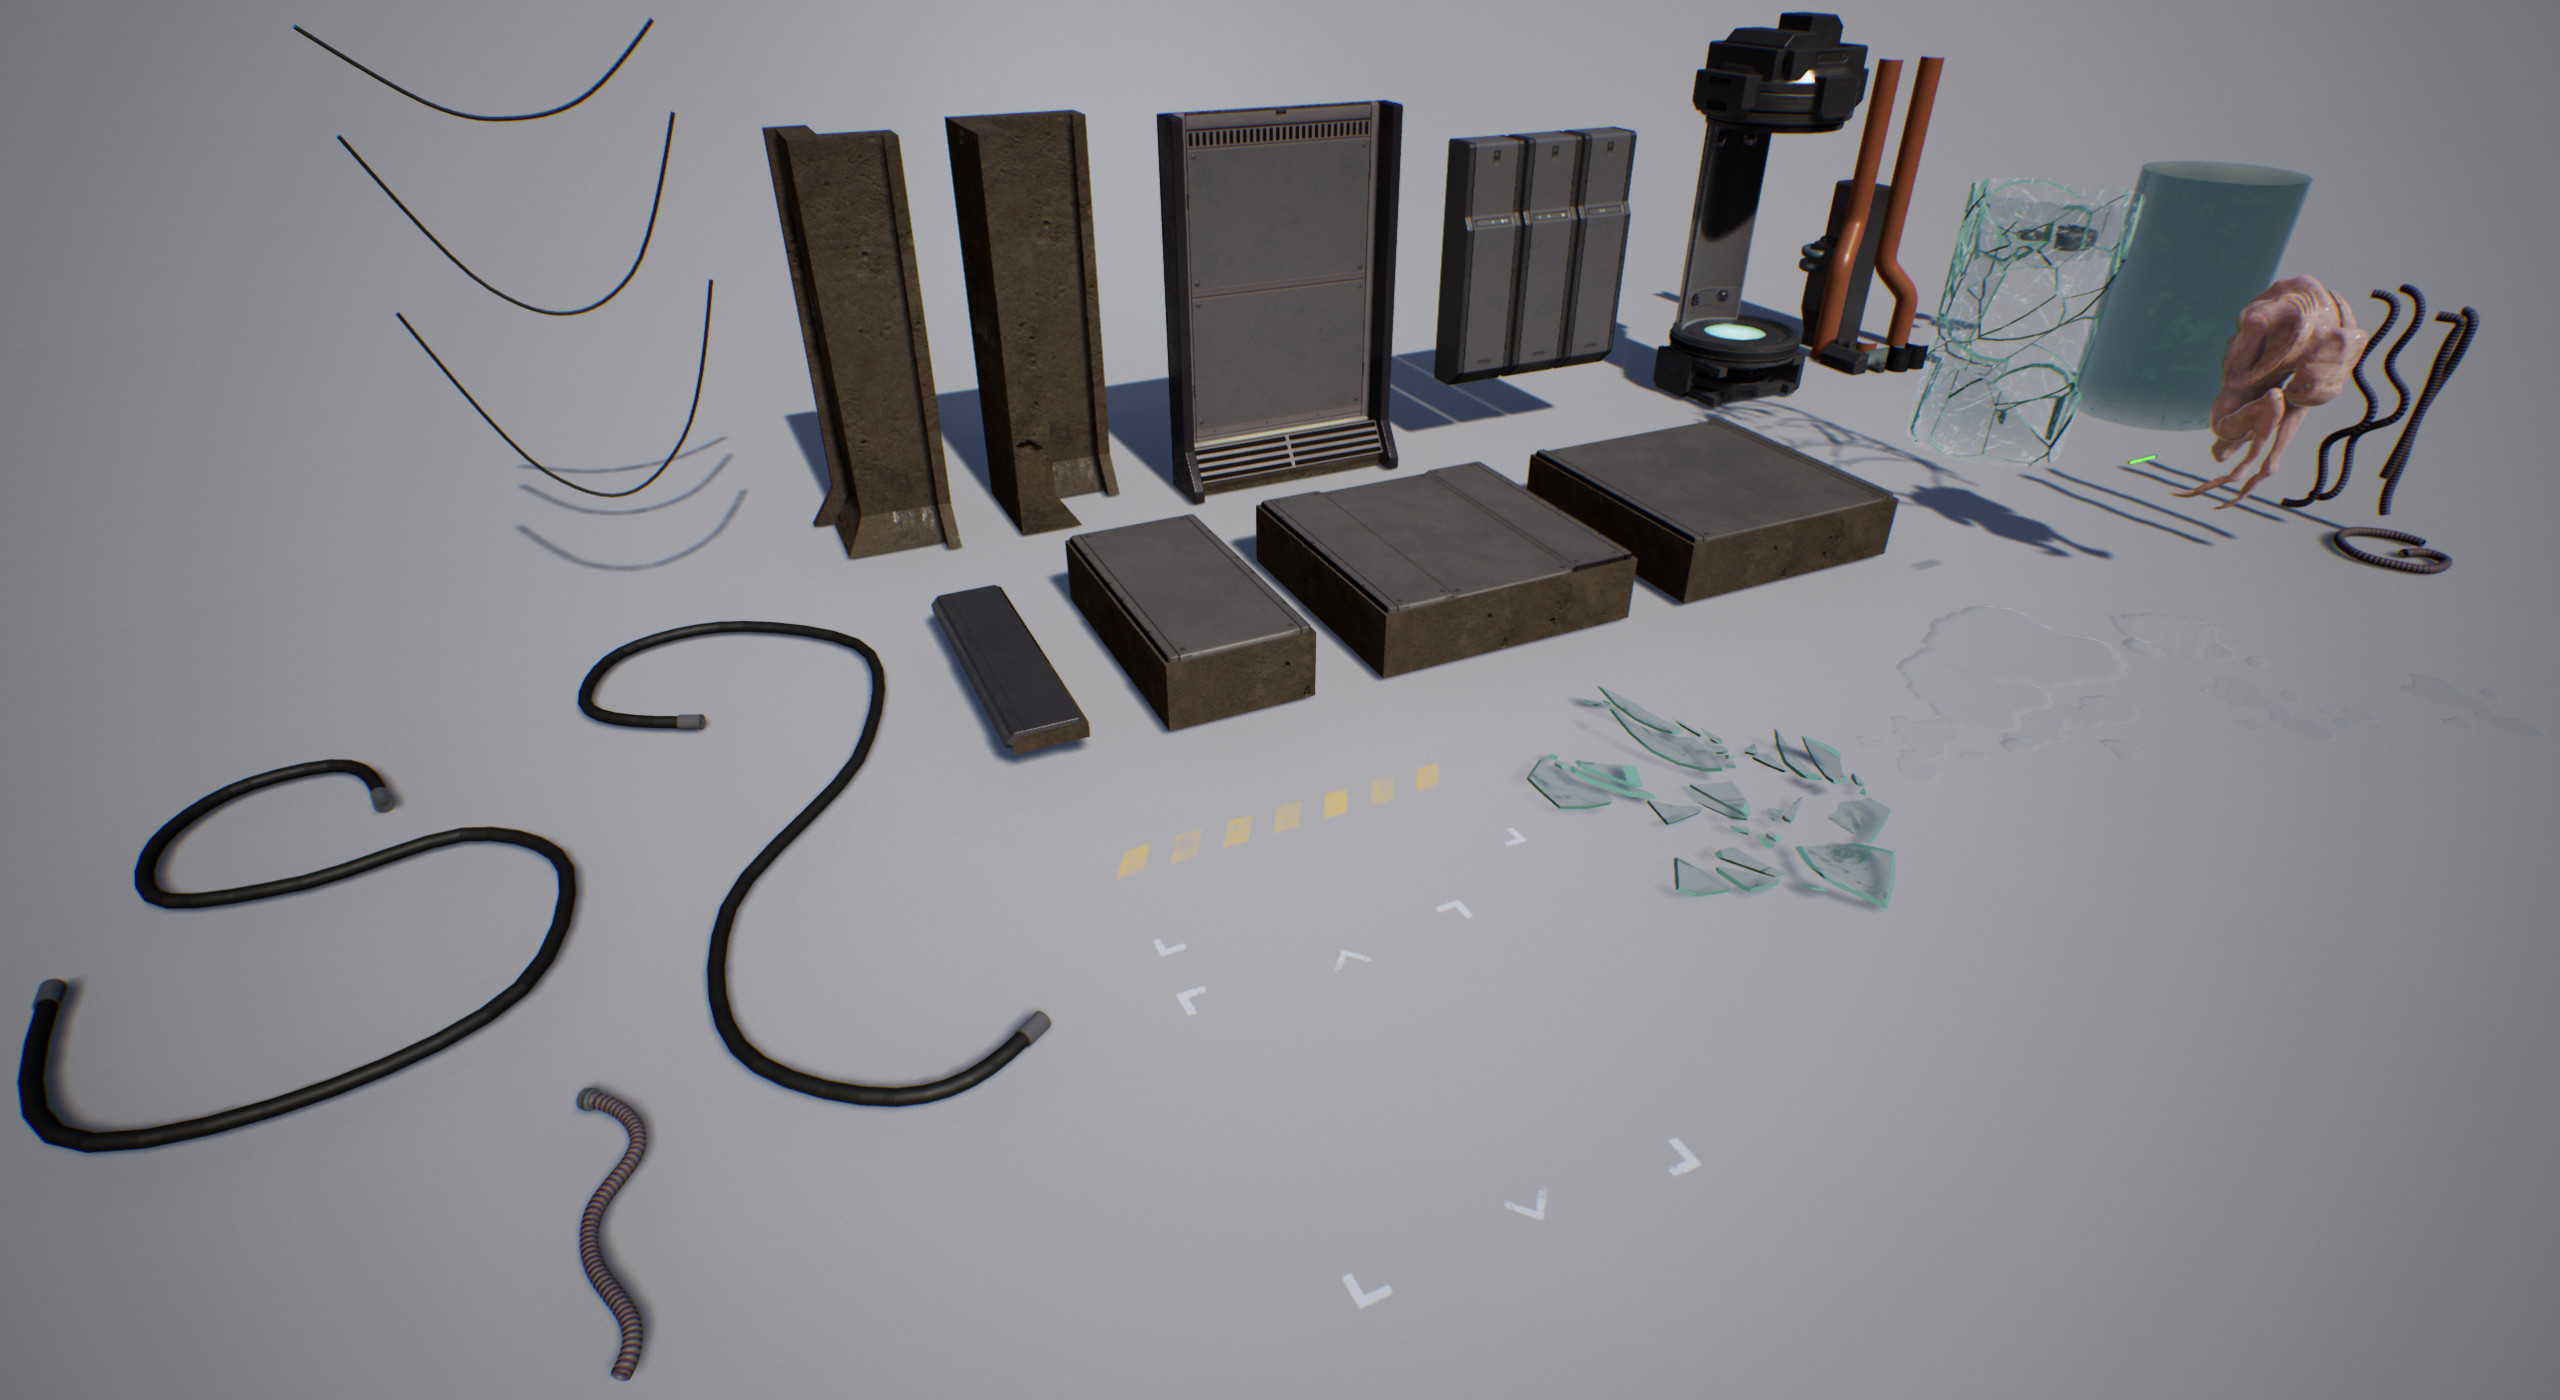 Assets created for scene